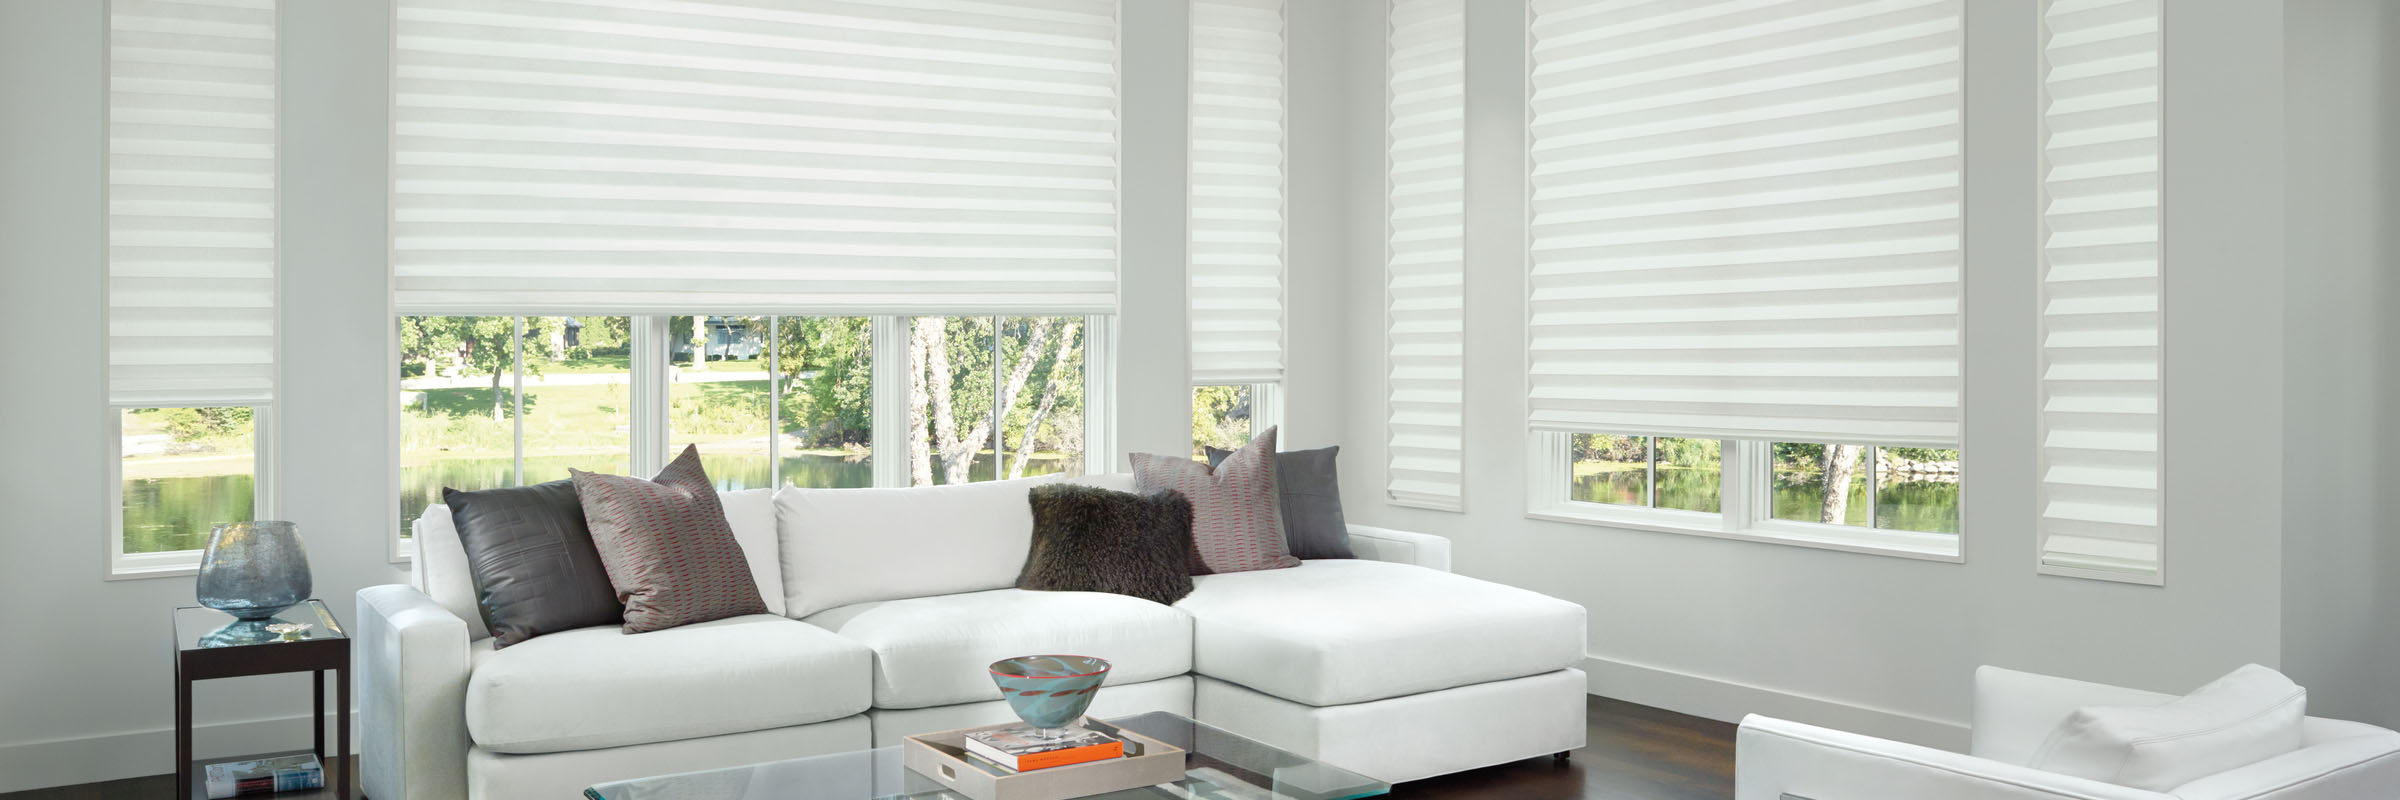 Soft window treatments in Layla December White - Solera